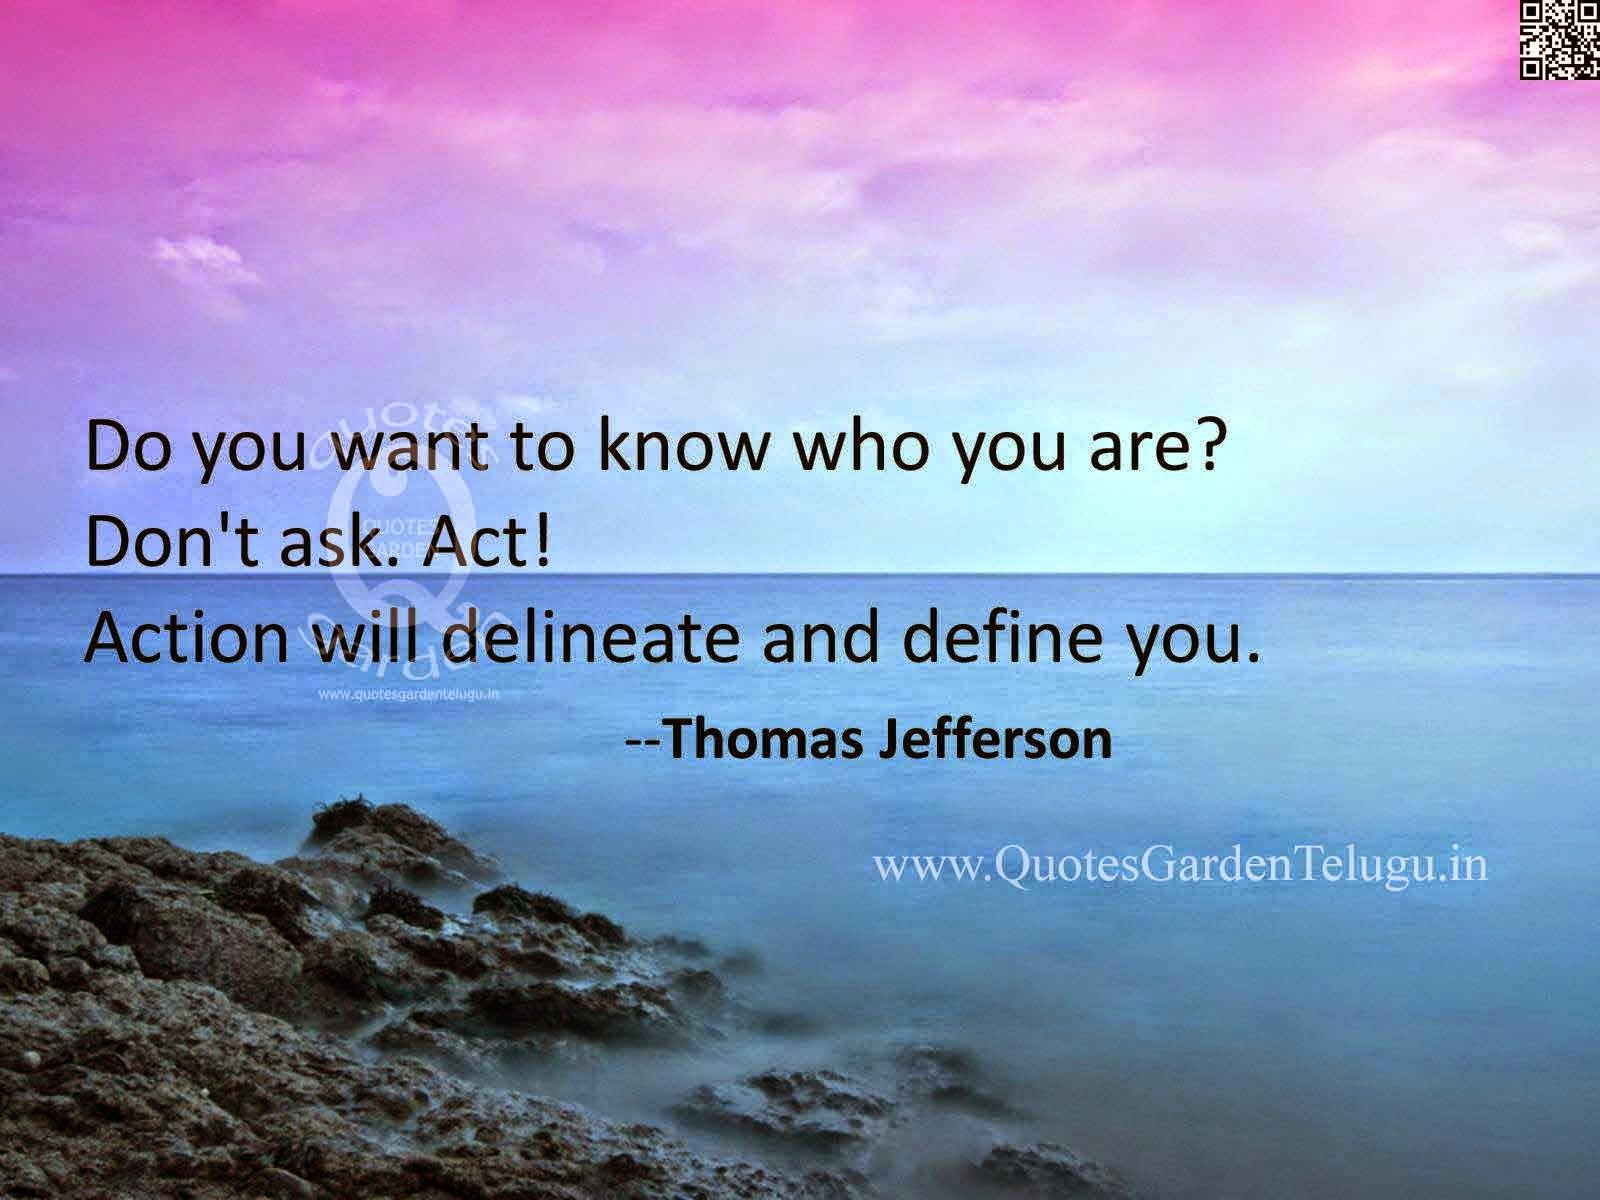 Famous English Success Quotes with images-Inspirational Quotes from Thomas Jefferson